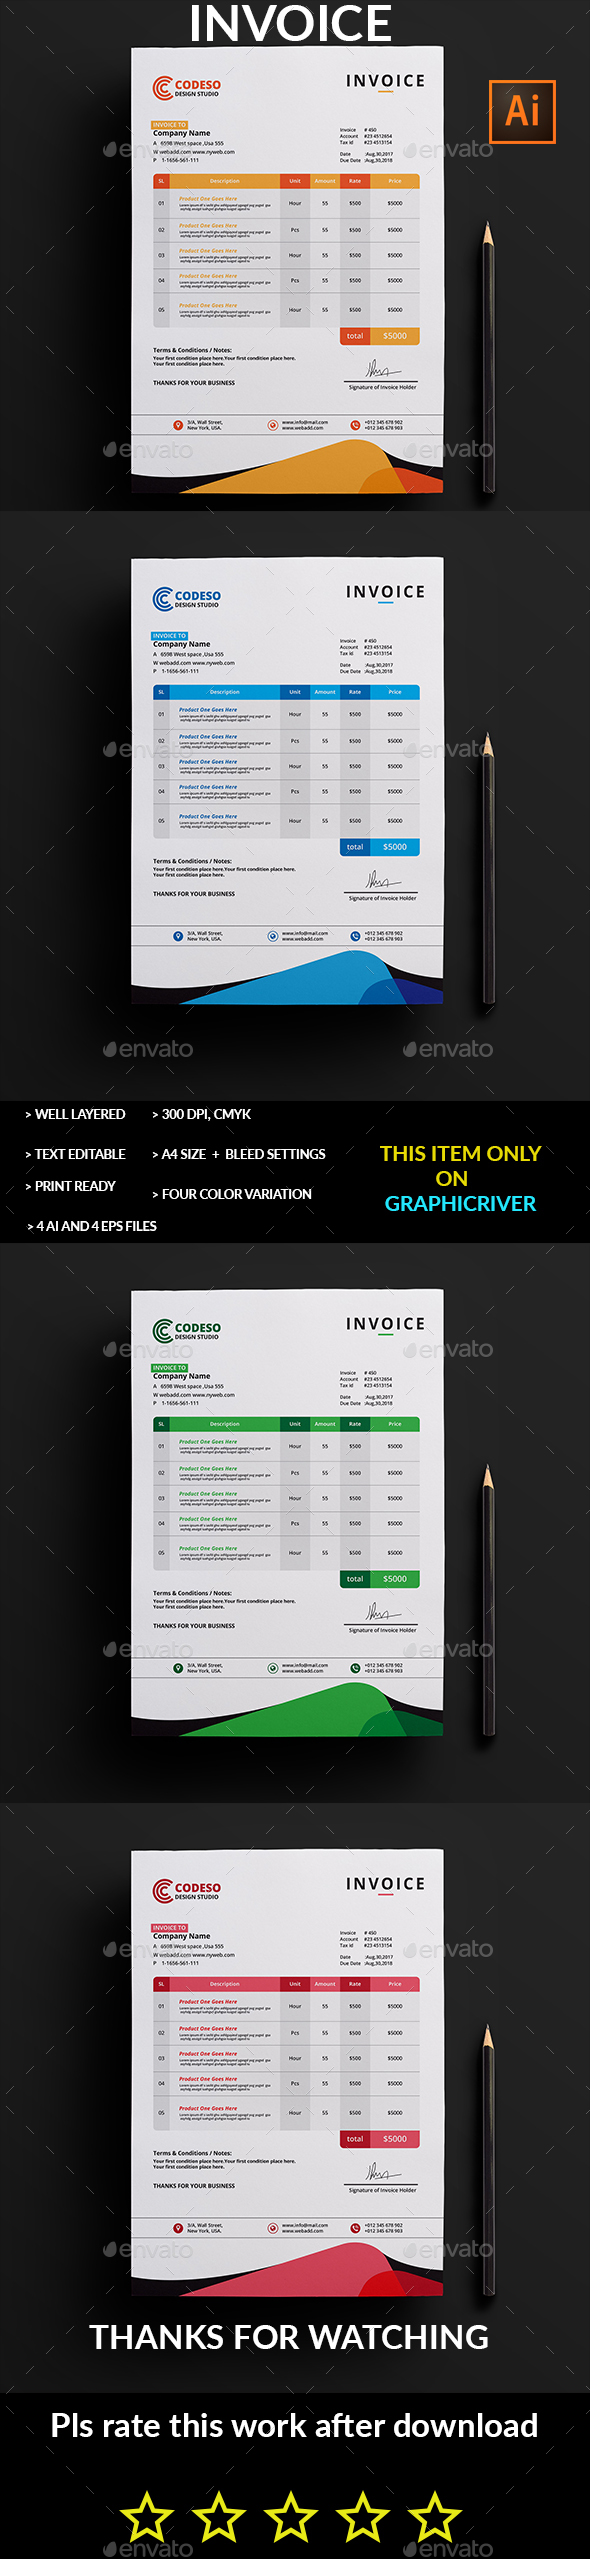 Invoice Sample Excel Invoice Graphics Designs  Templates From Graphicriver Simple Receipt Form Excel with Registered Mail With Return Receipt Pdf  Ez Pass Receipts